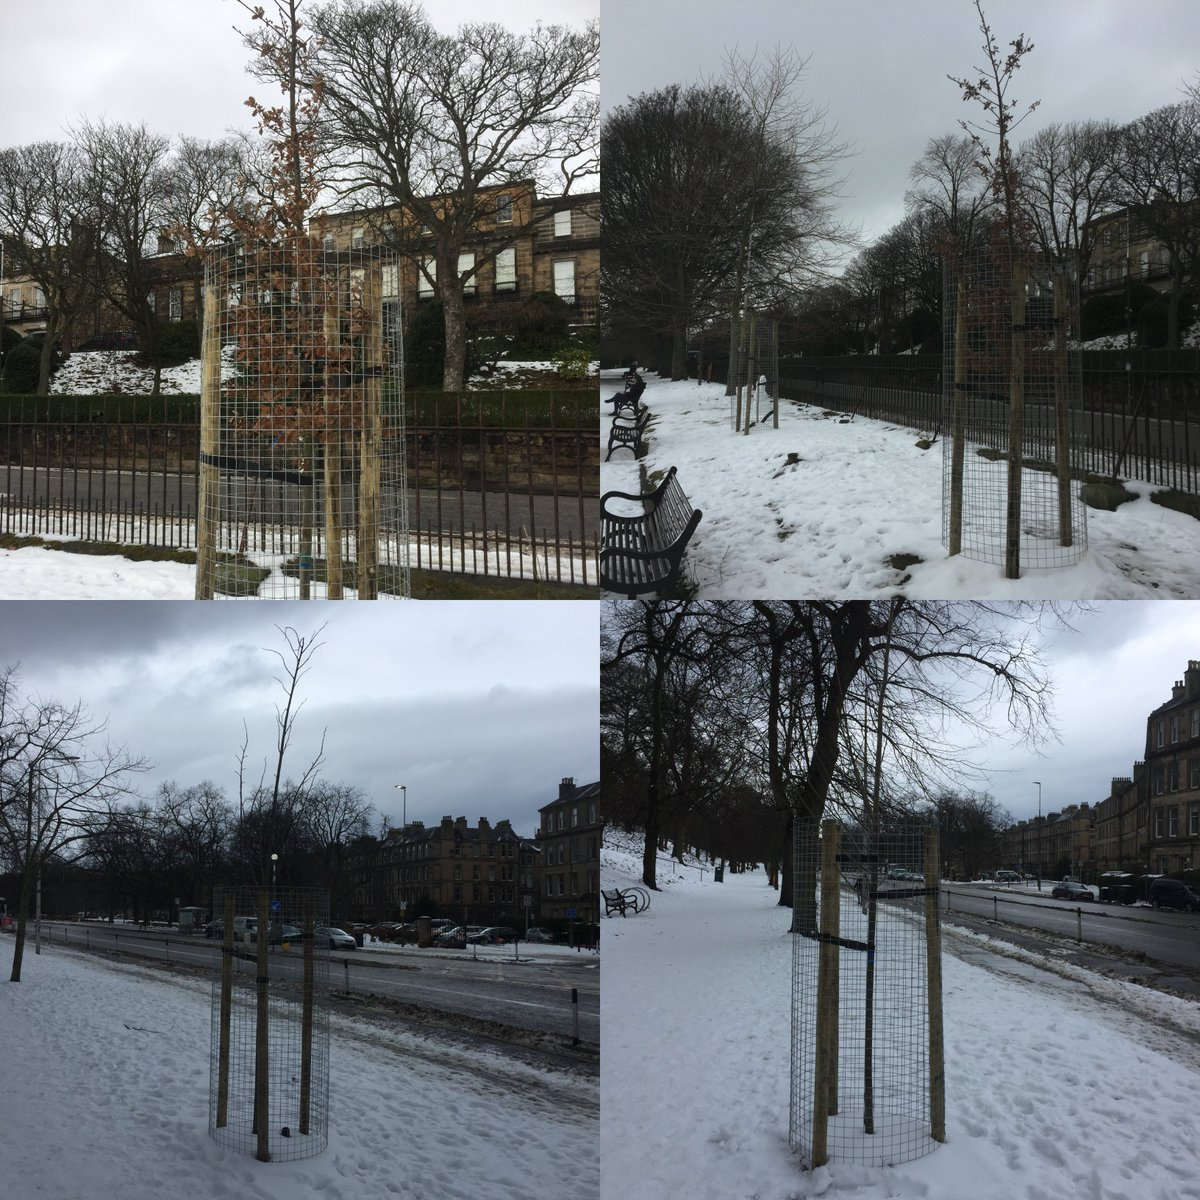 Thanks to your donations we have planted some lovely trees on Regent Road and London Road. Every donation helps make Edinburgh greener by planting more trees and by restoring the trees we already have. To find out more information visit https://t.co/wE9bLnCPHl @WoodlandTrust